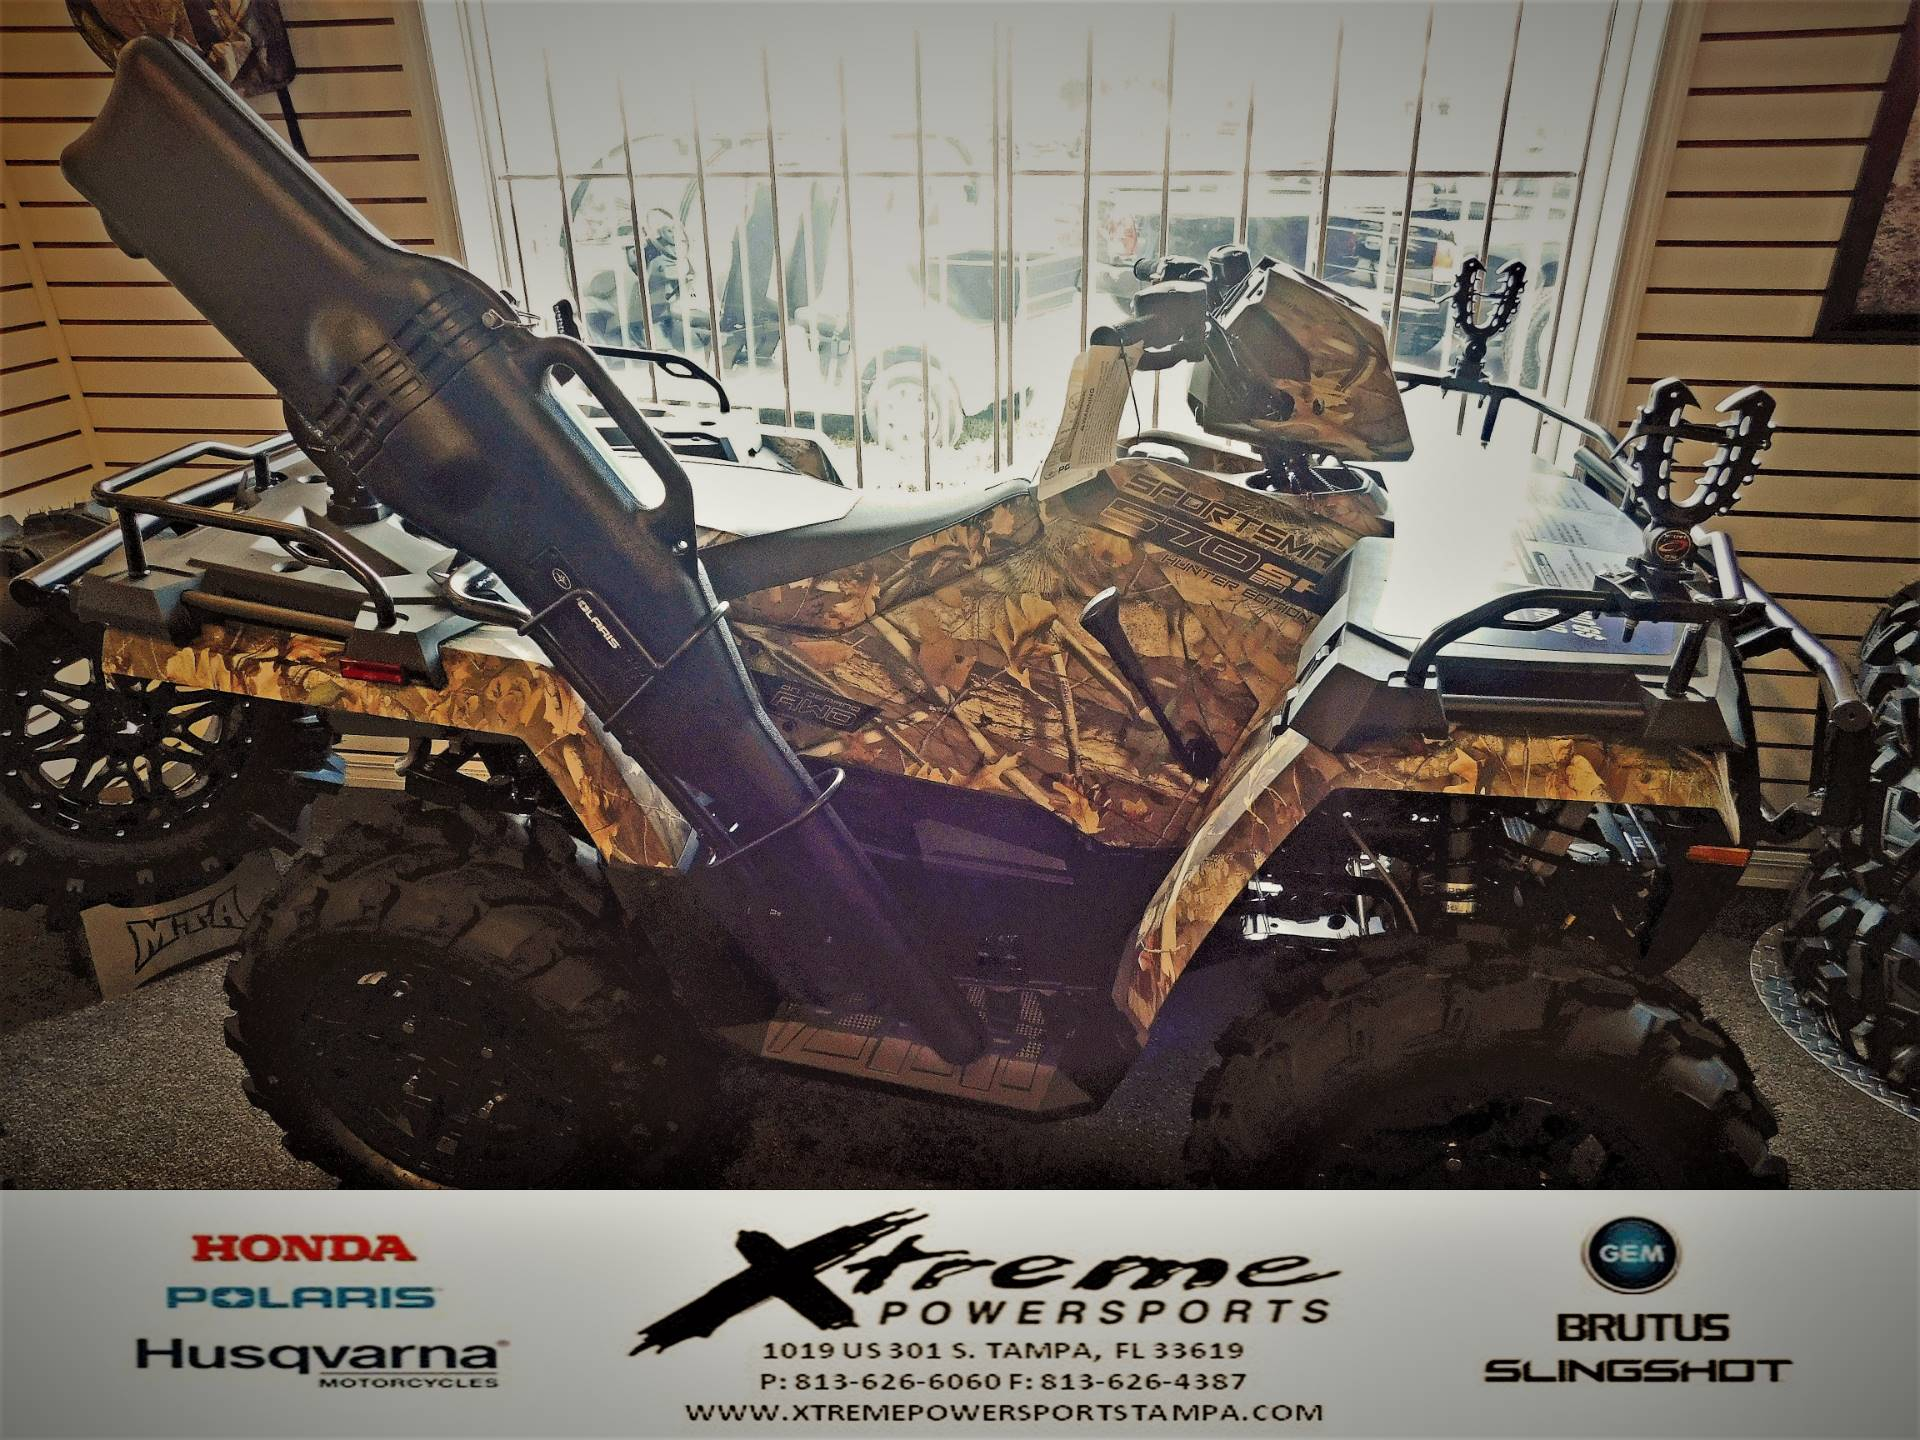 2019 Polaris SPORTSMAN 570 HUNTER EDITION in Tampa, Florida